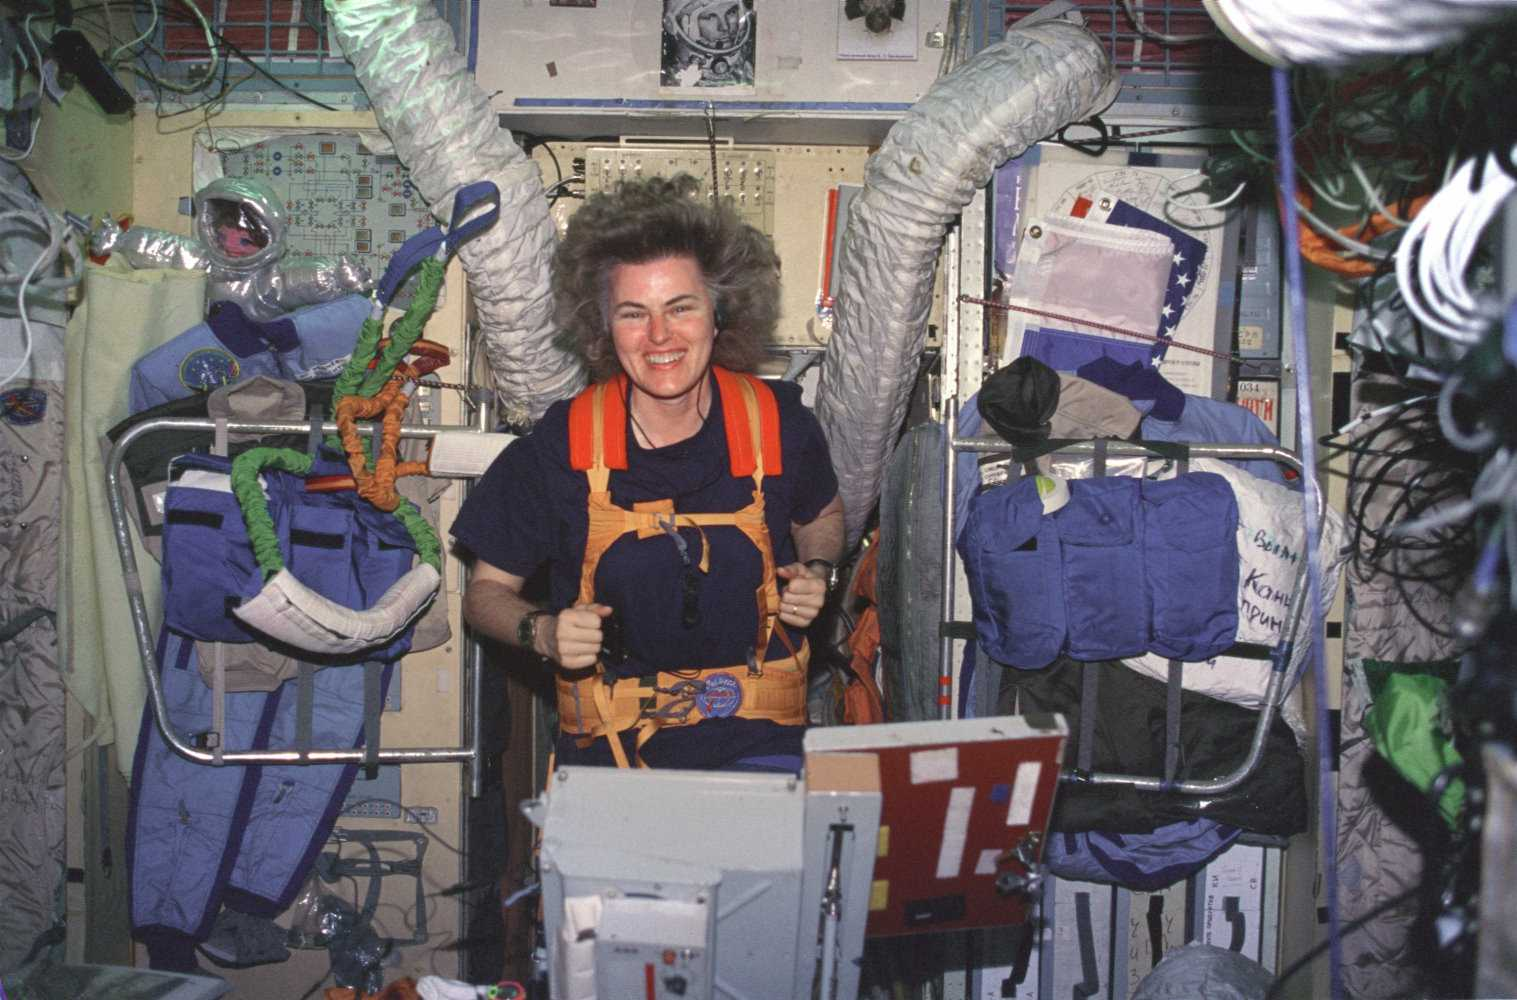 Shannon Lucid on treadmill aboard Russian space station Mir, 1996.